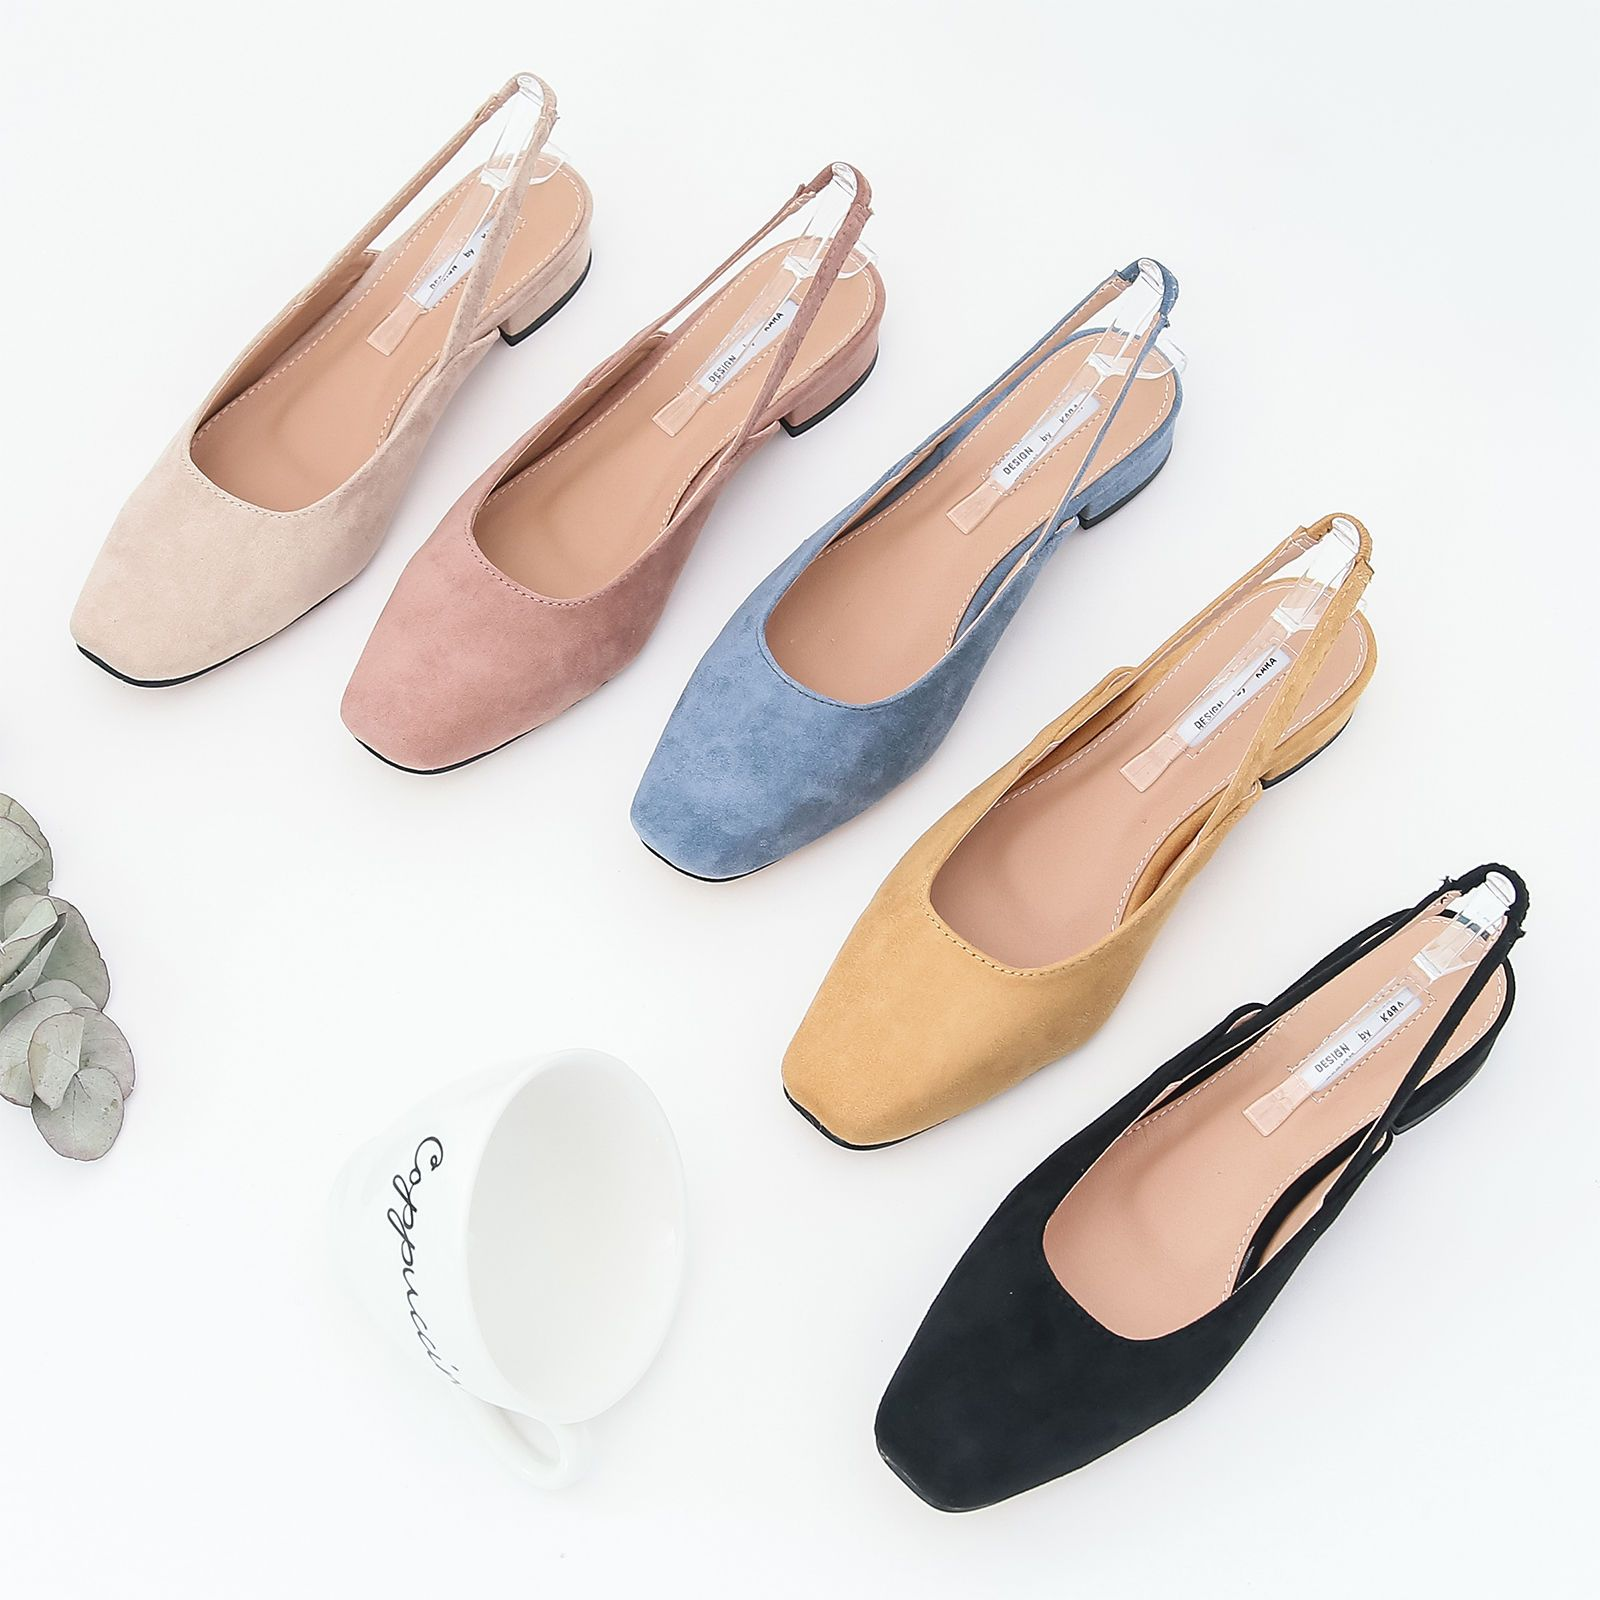 f8838e0f81e Annakastle Vegan Suede Square Toe Backless Loafer Slingback Flat Daily Shoes